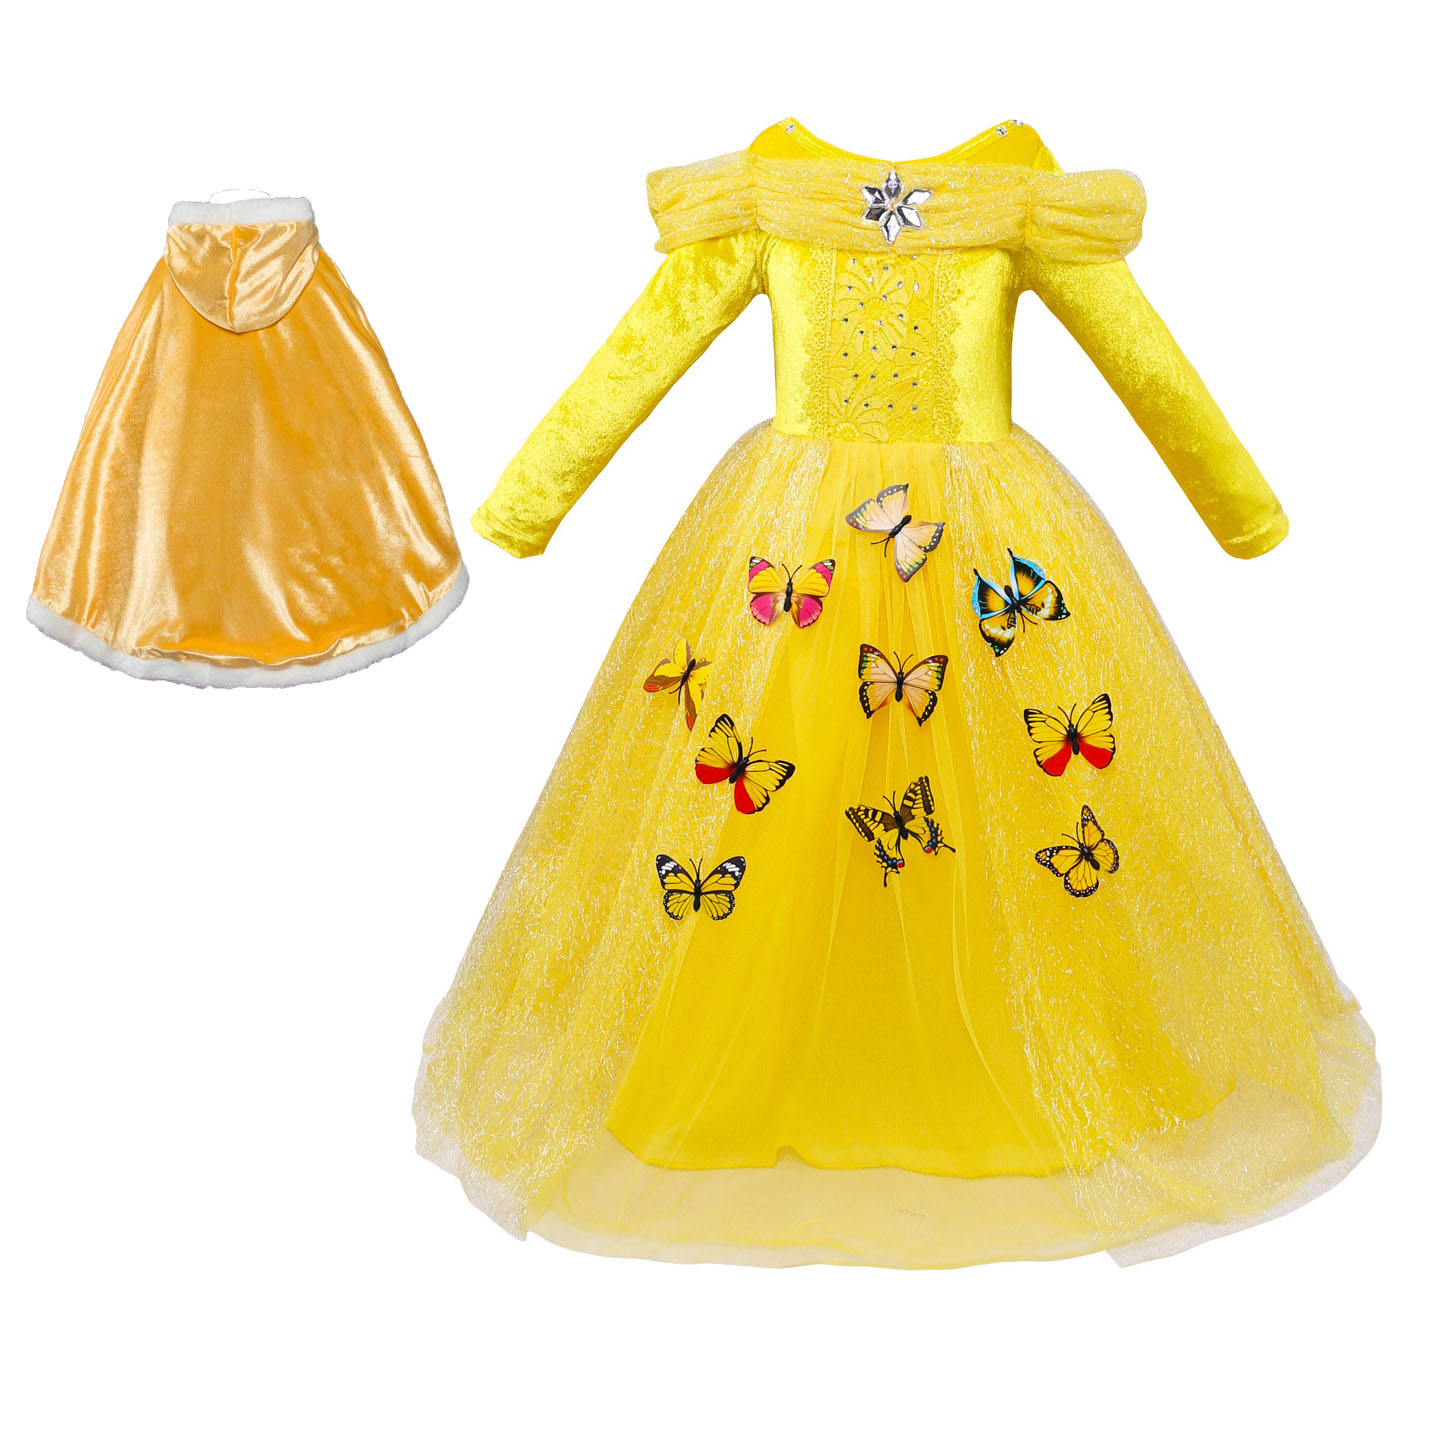 Childrens Halloween Costume Catalog Princess Cinderella Sleeping Beauty Belle Costume for Kids Cape Cosplay Outfits Girls